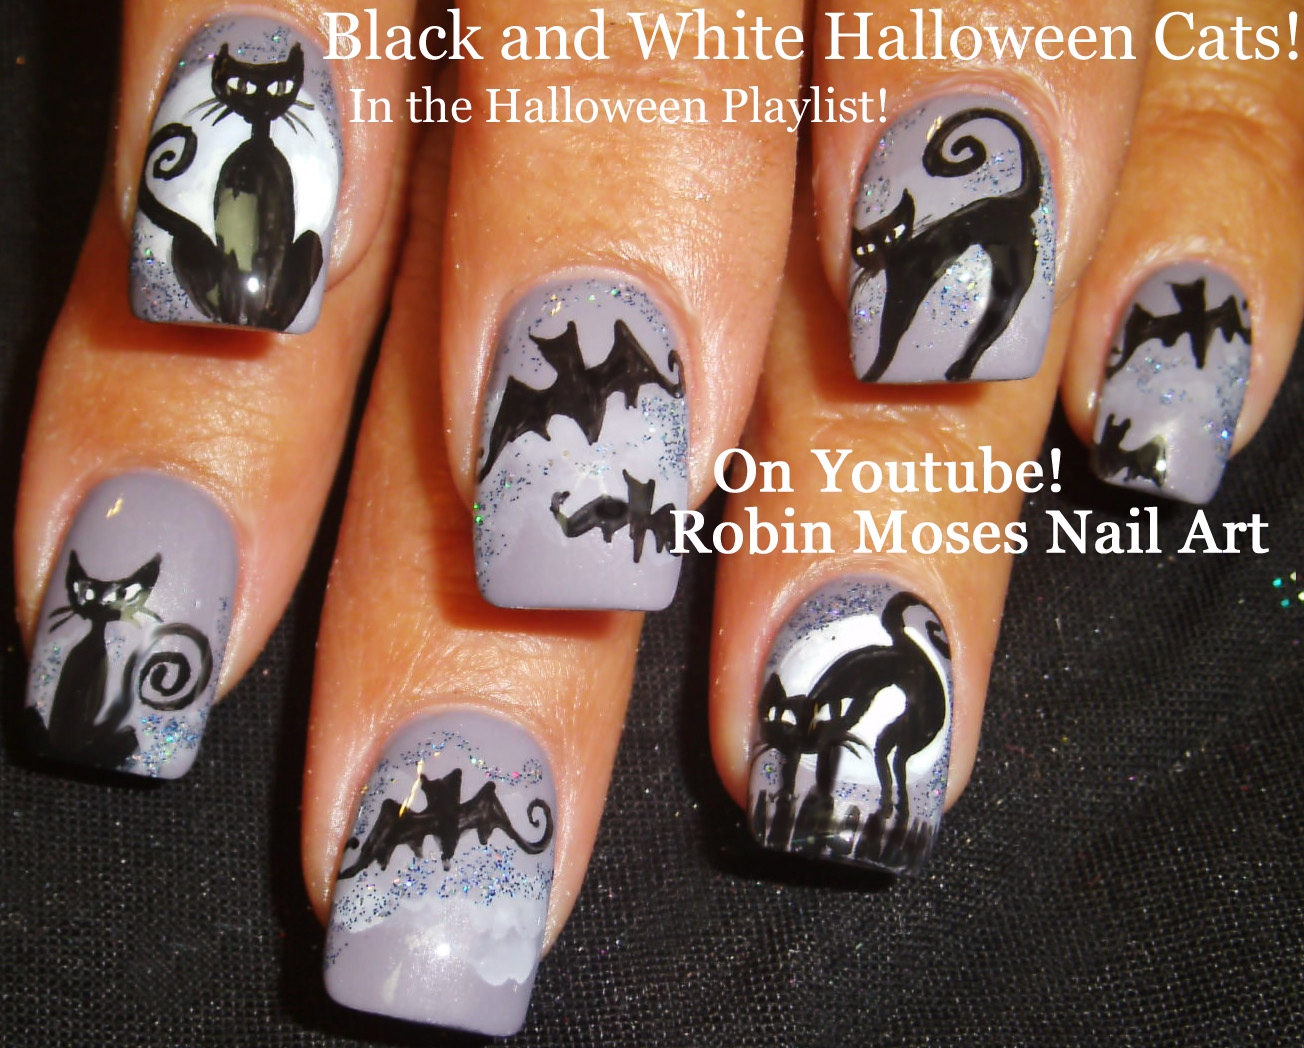 Robin moses nail art halloween nails halloween nail art graveyard with bloody hand halloween nails robin moses nail art design tutorial prinsesfo Images